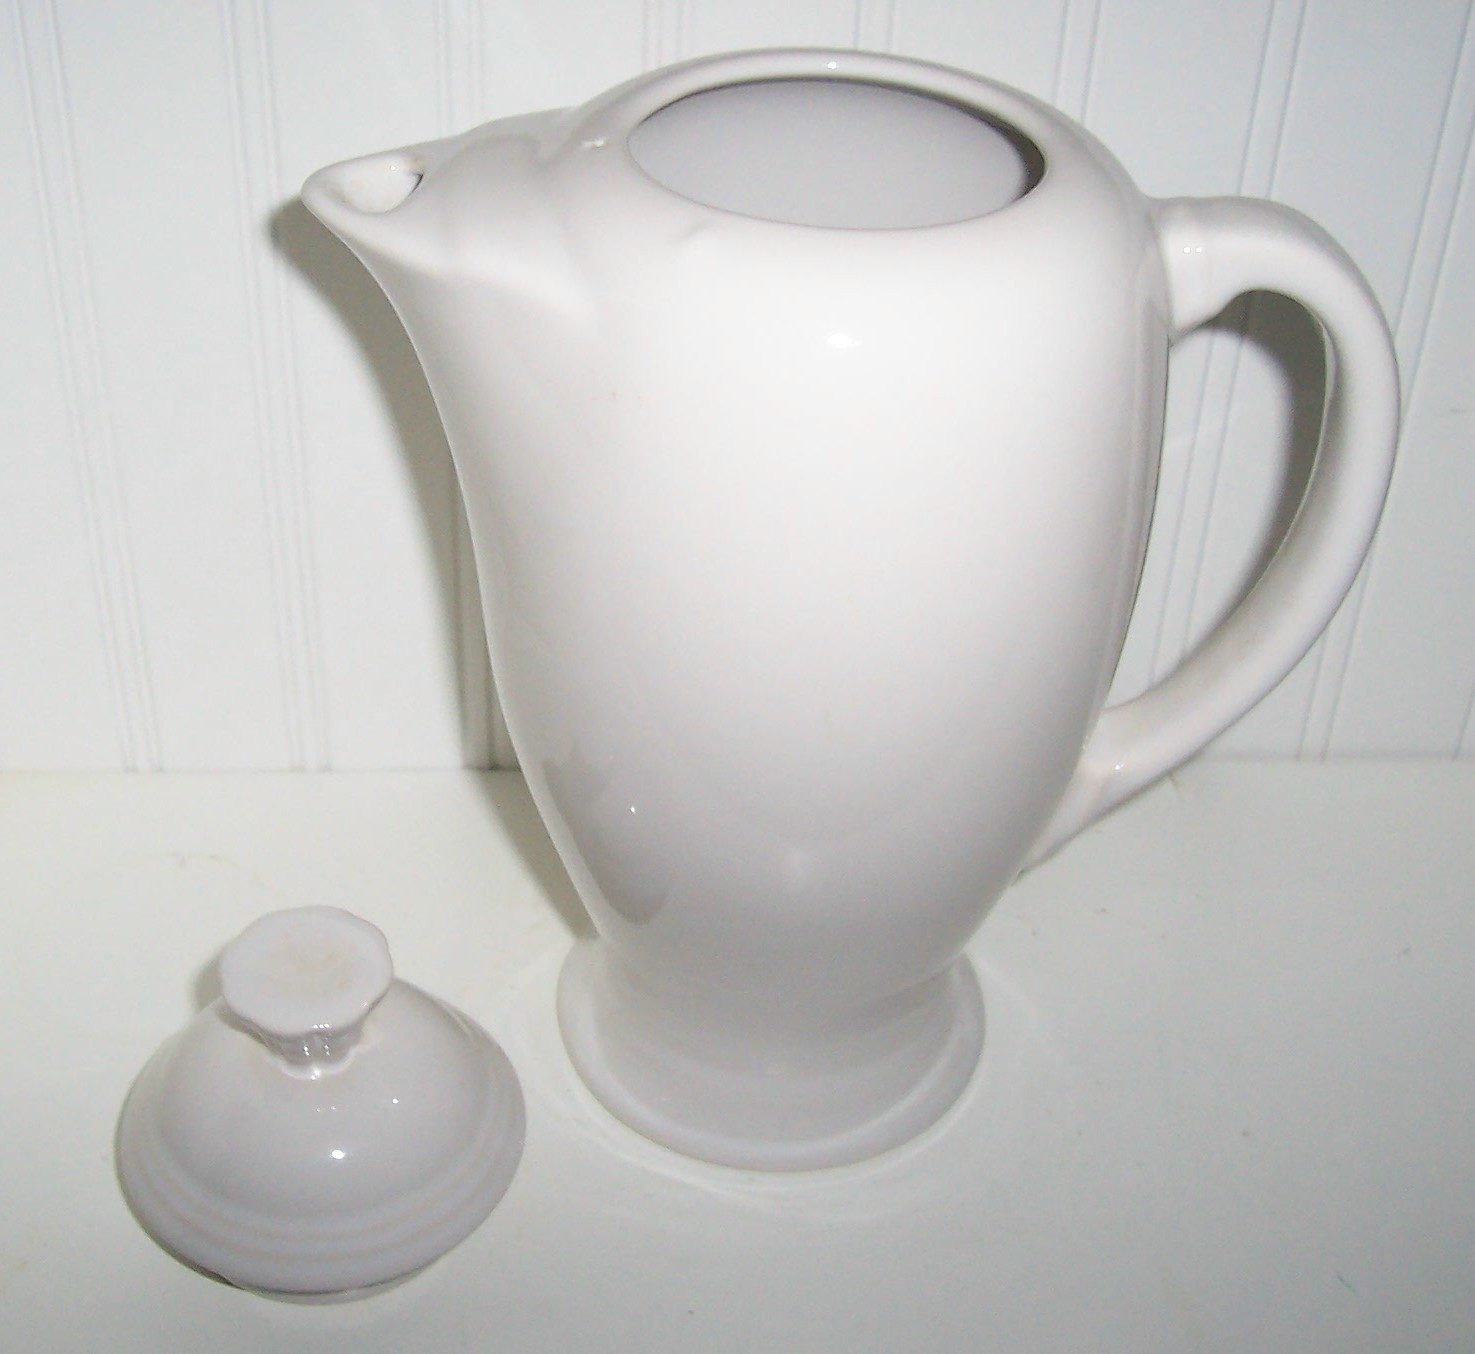 Fiesta/ Fiestaware White Coffee Pot /Retired